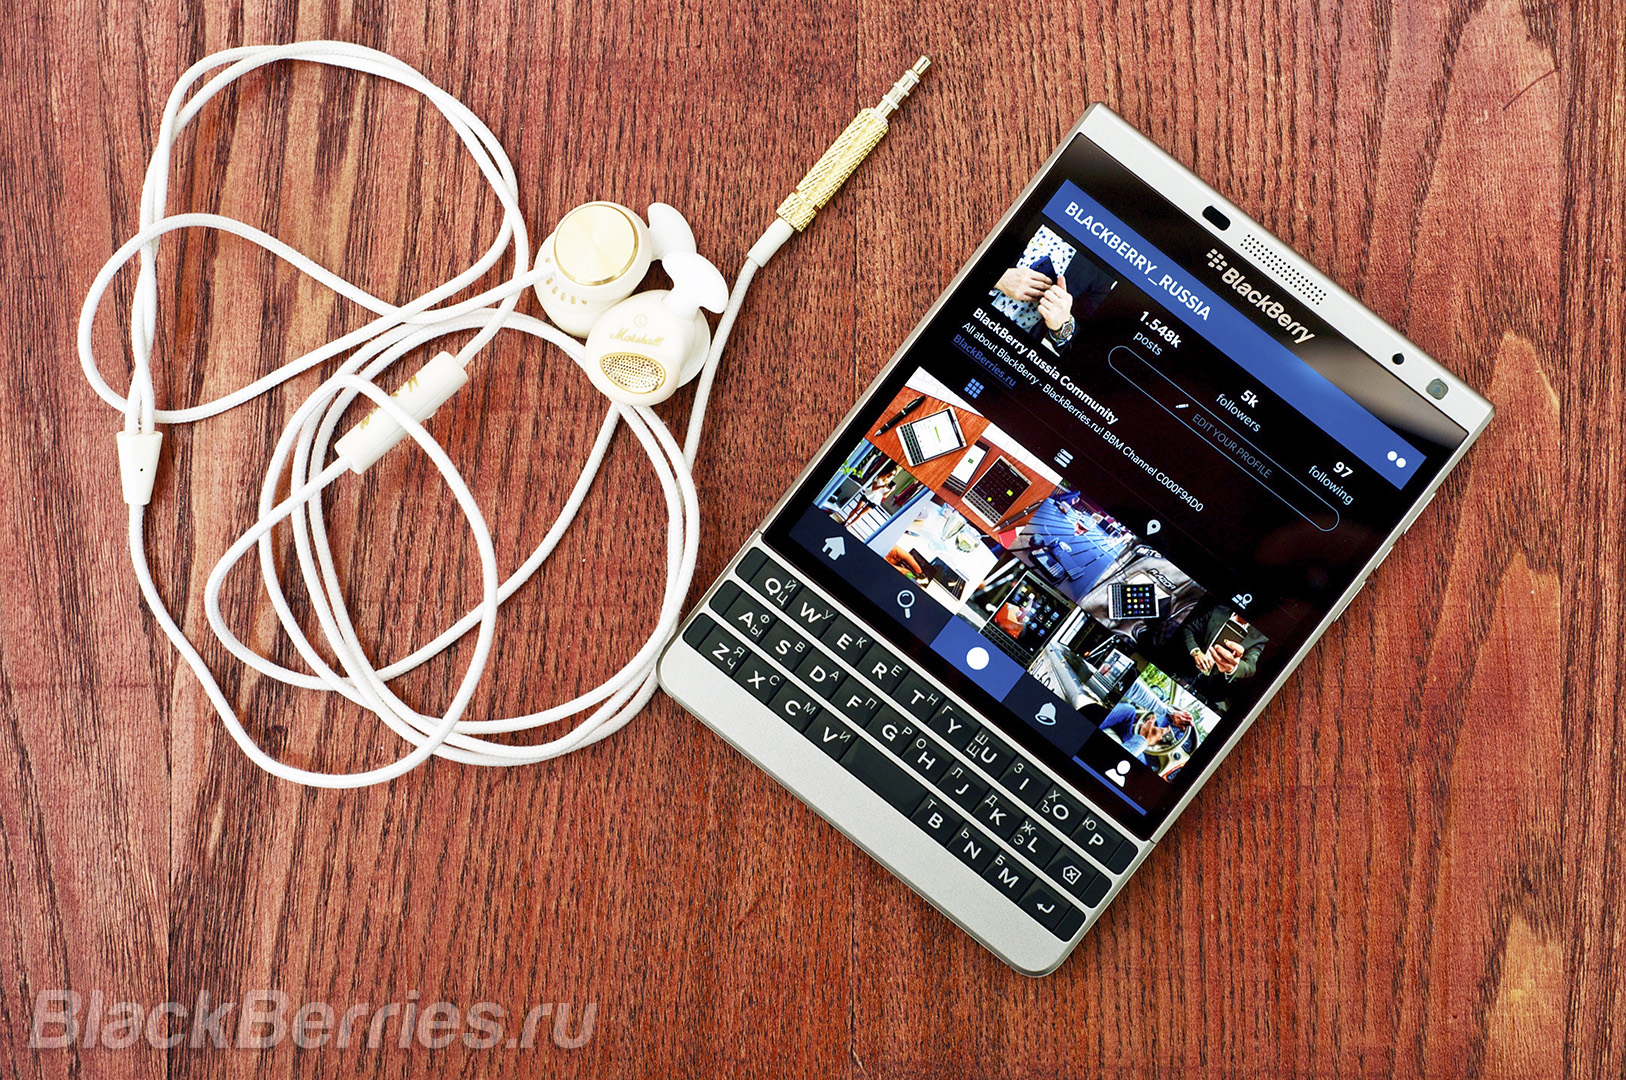 BlackBerry-Passport-Silver-Apps-16-08-4